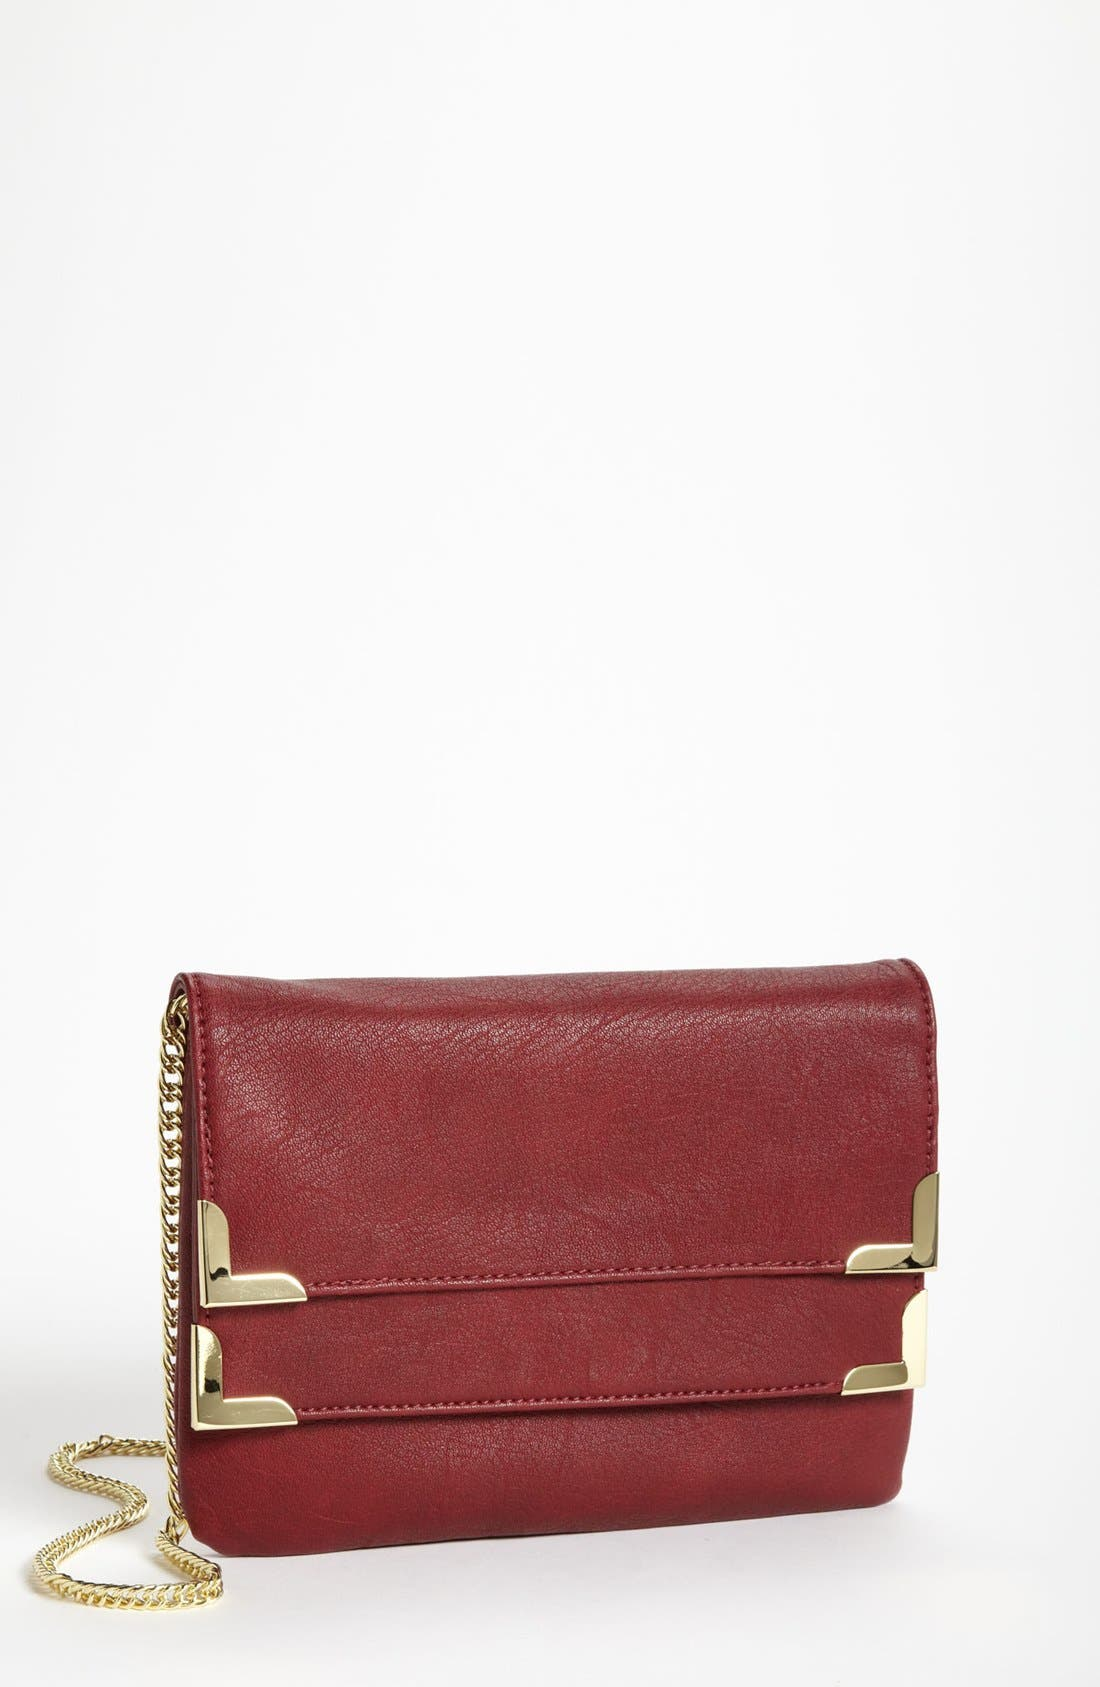 Main Image - Danielle Nicole Faux Leather Clutch